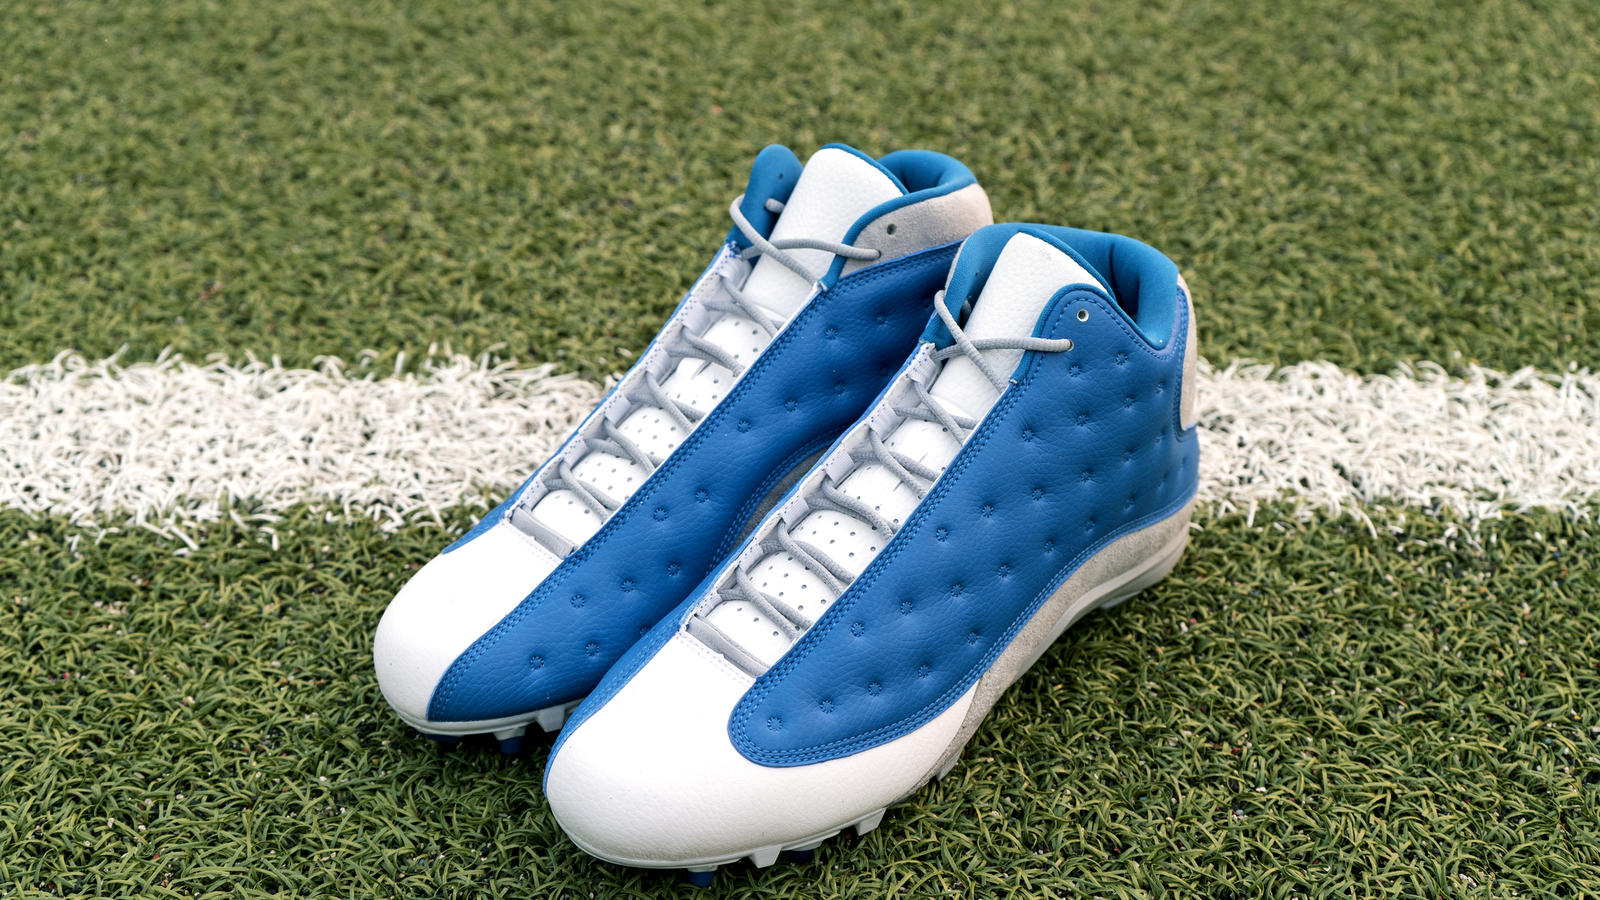 Jordan Brand's Football Roster Debuts New Air Jordan XIII PE Cleats 11